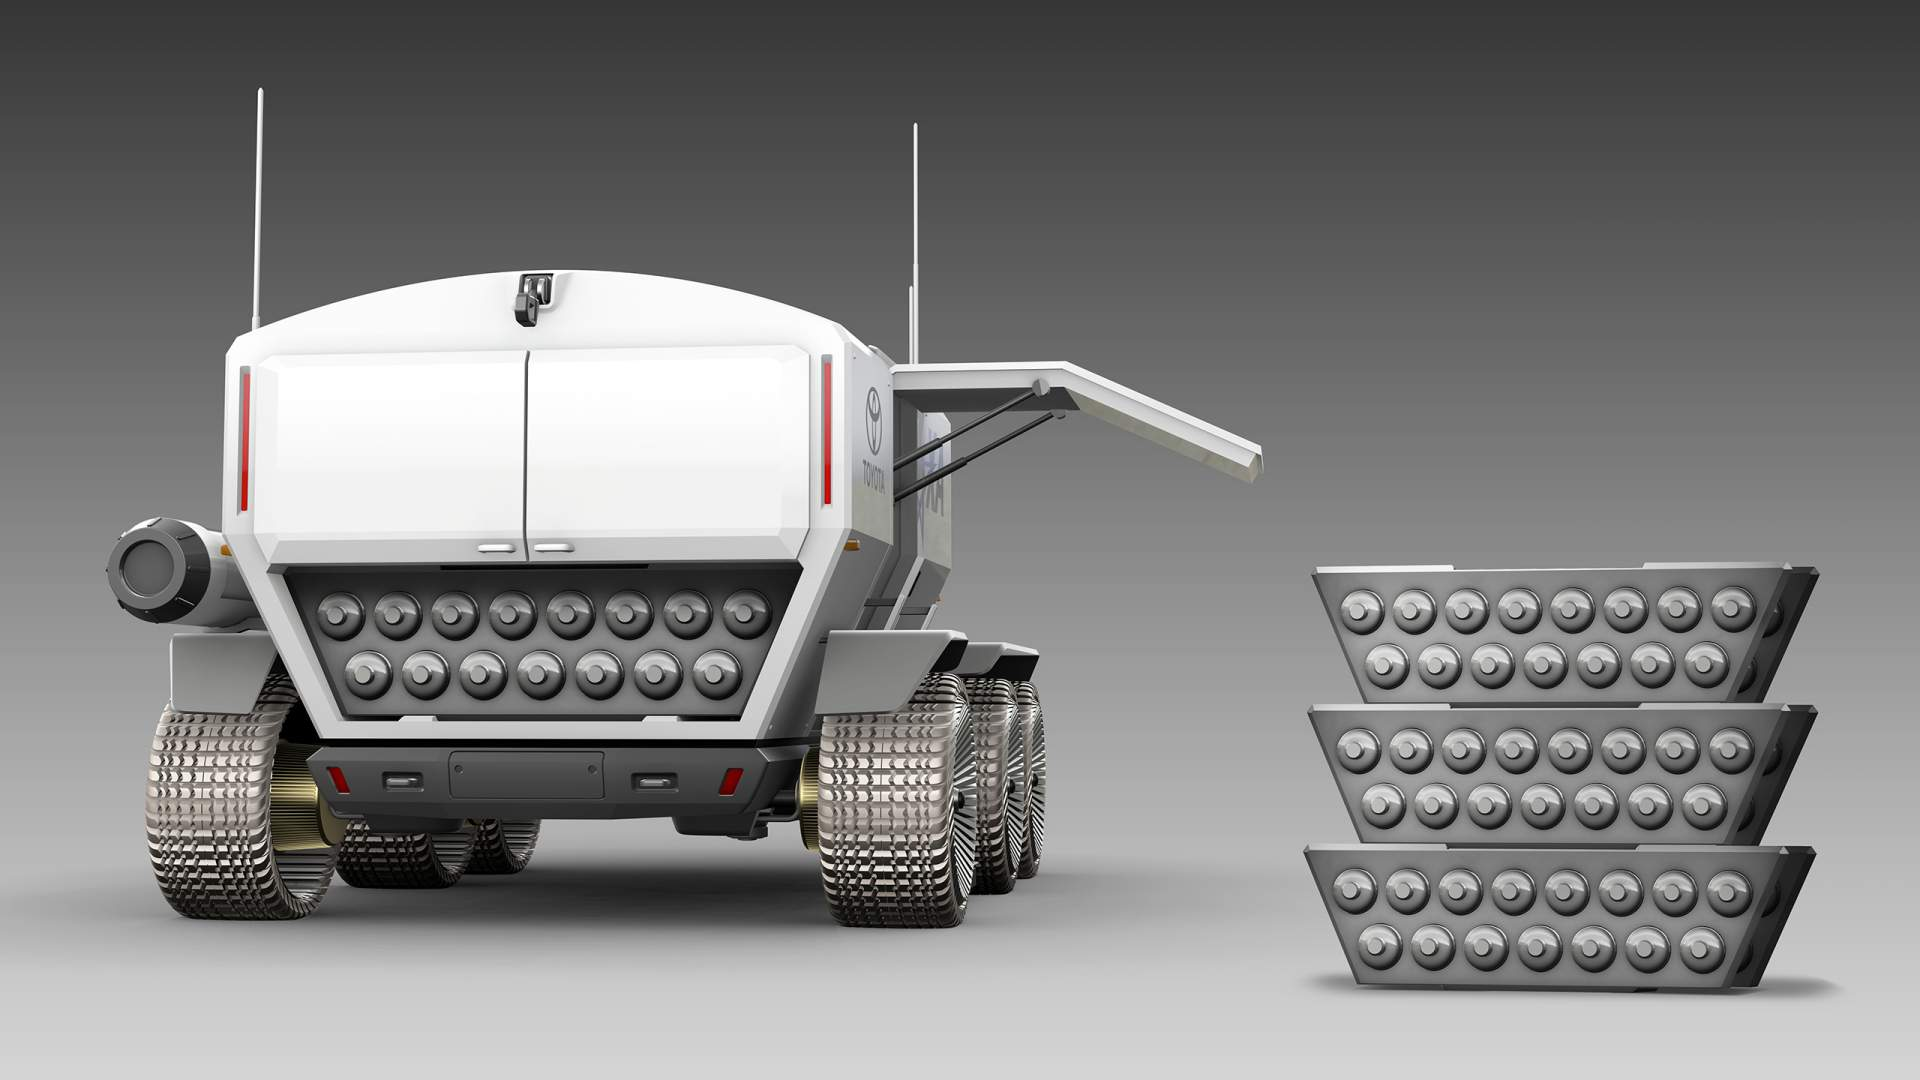 toyota-fuel-cell-electric-lunar-rover-project-6.jpg